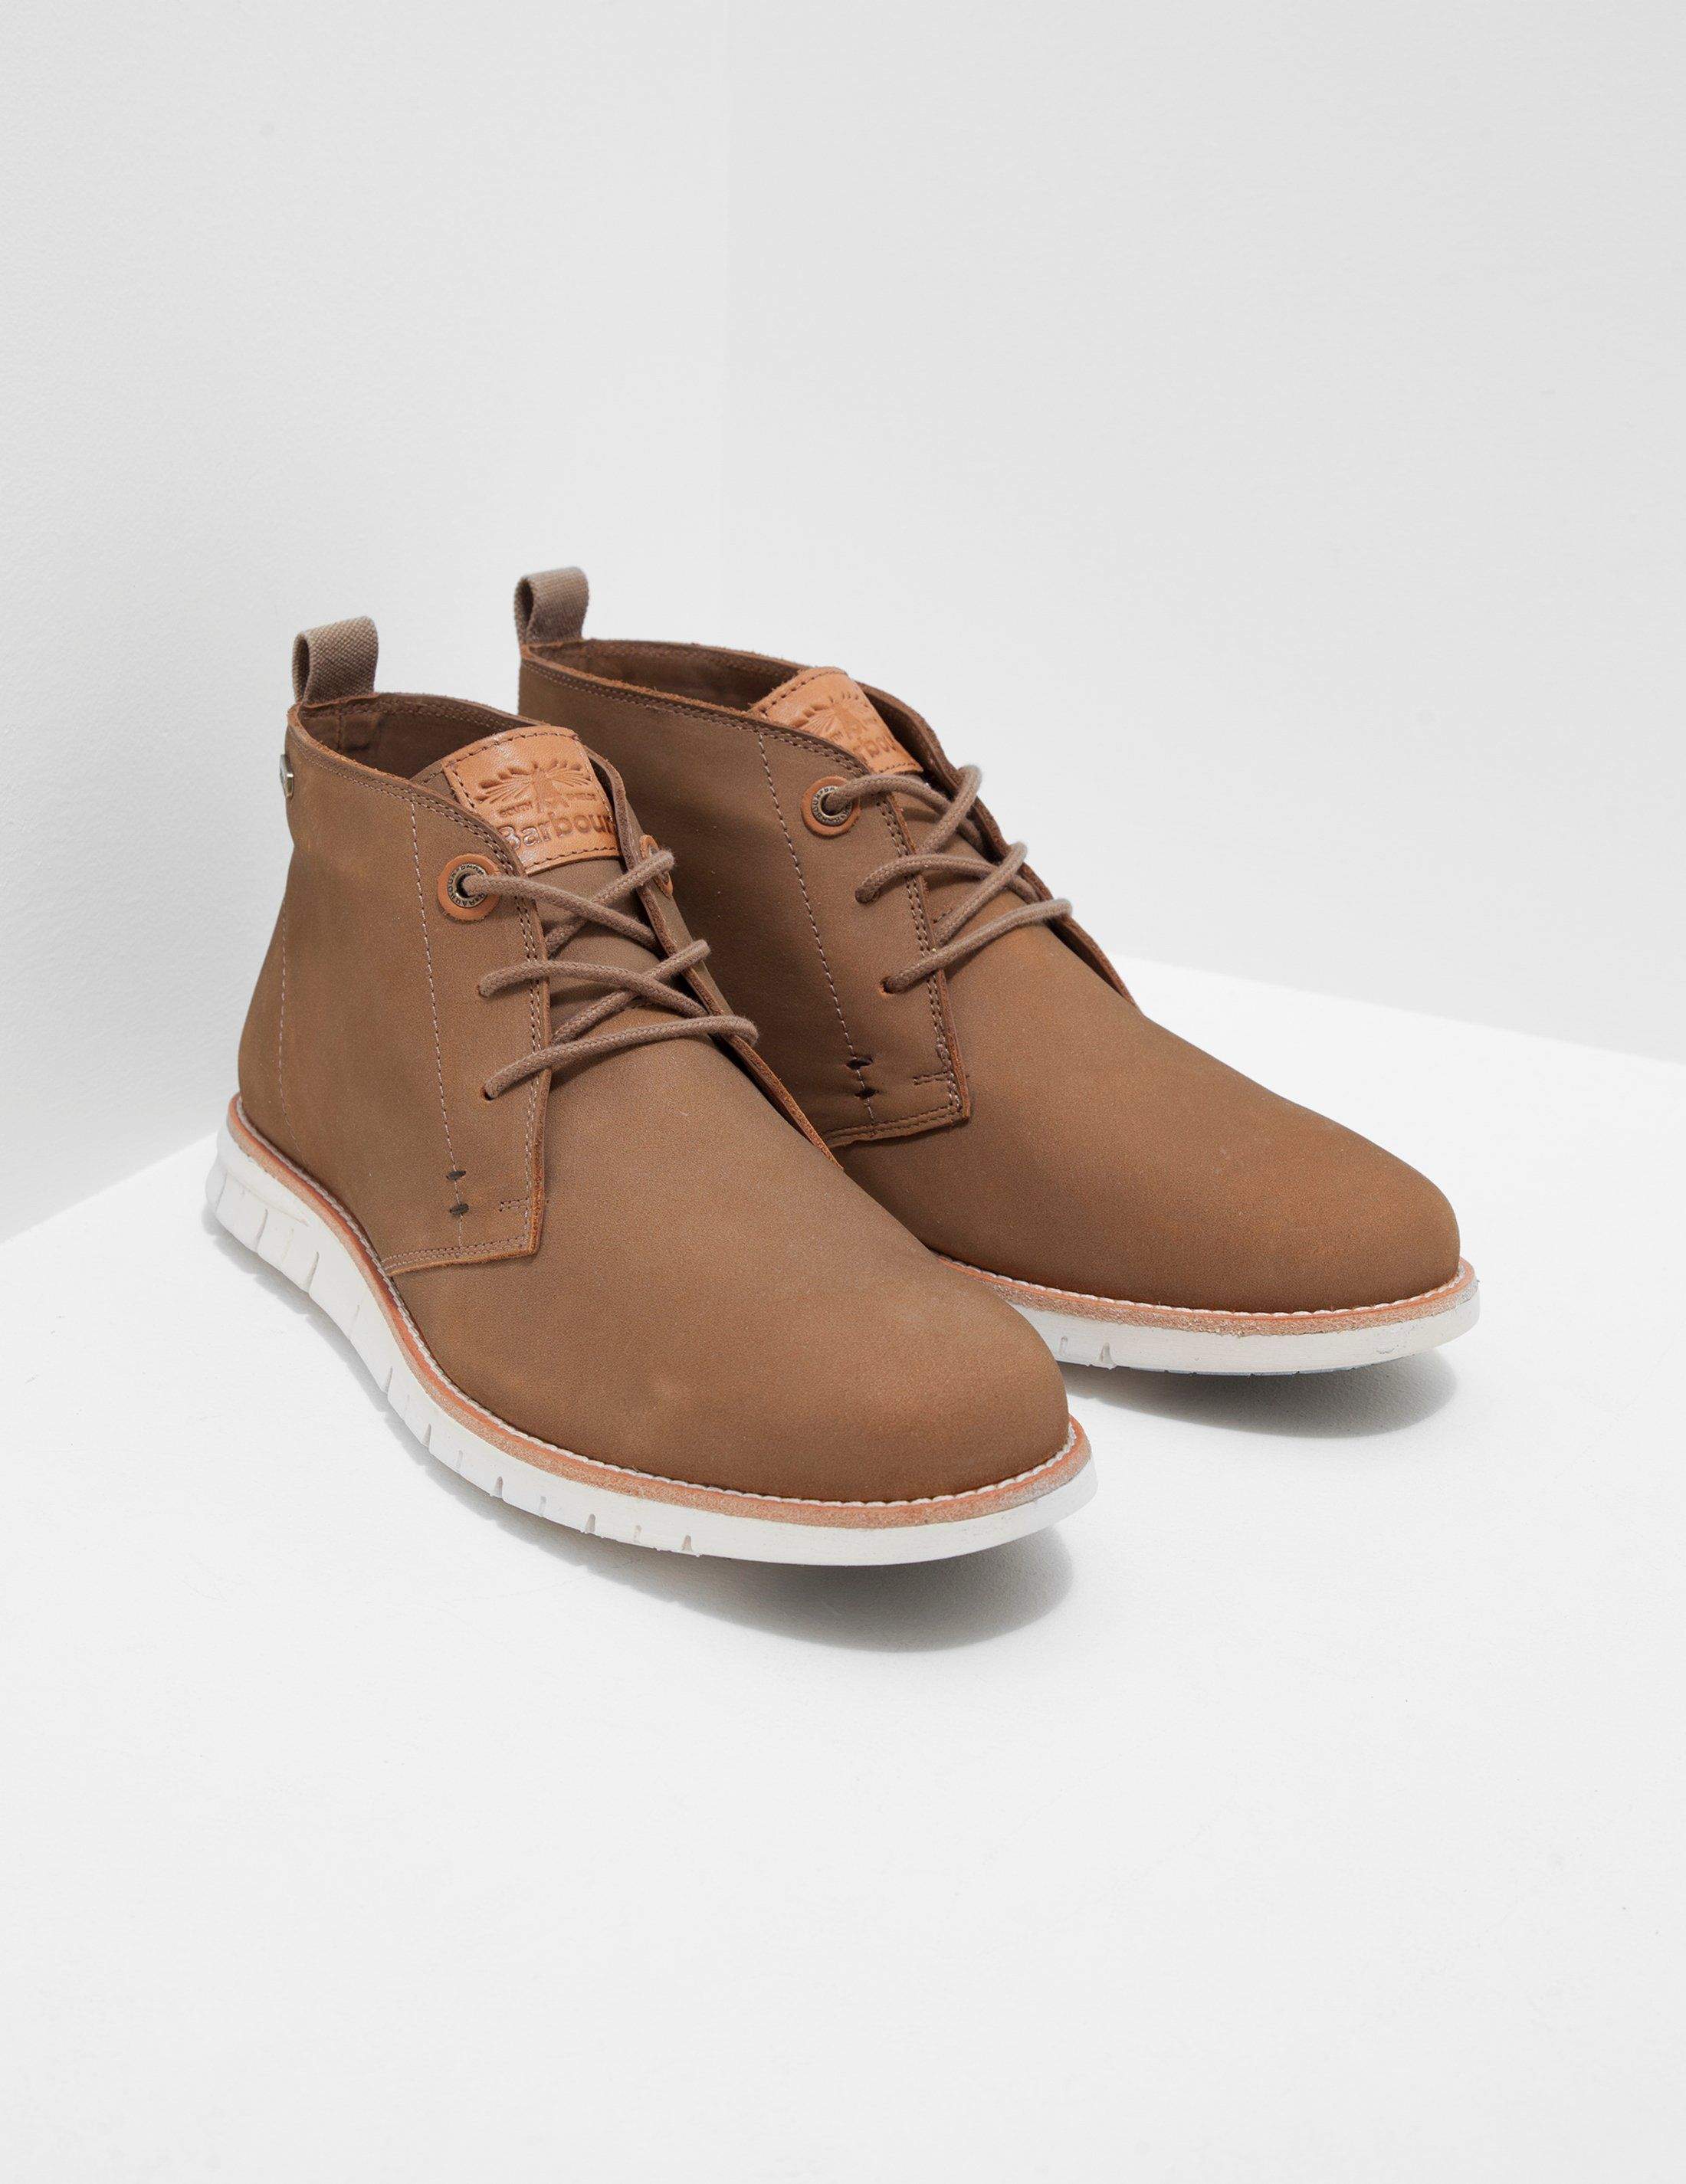 Barbour Burghley Boots